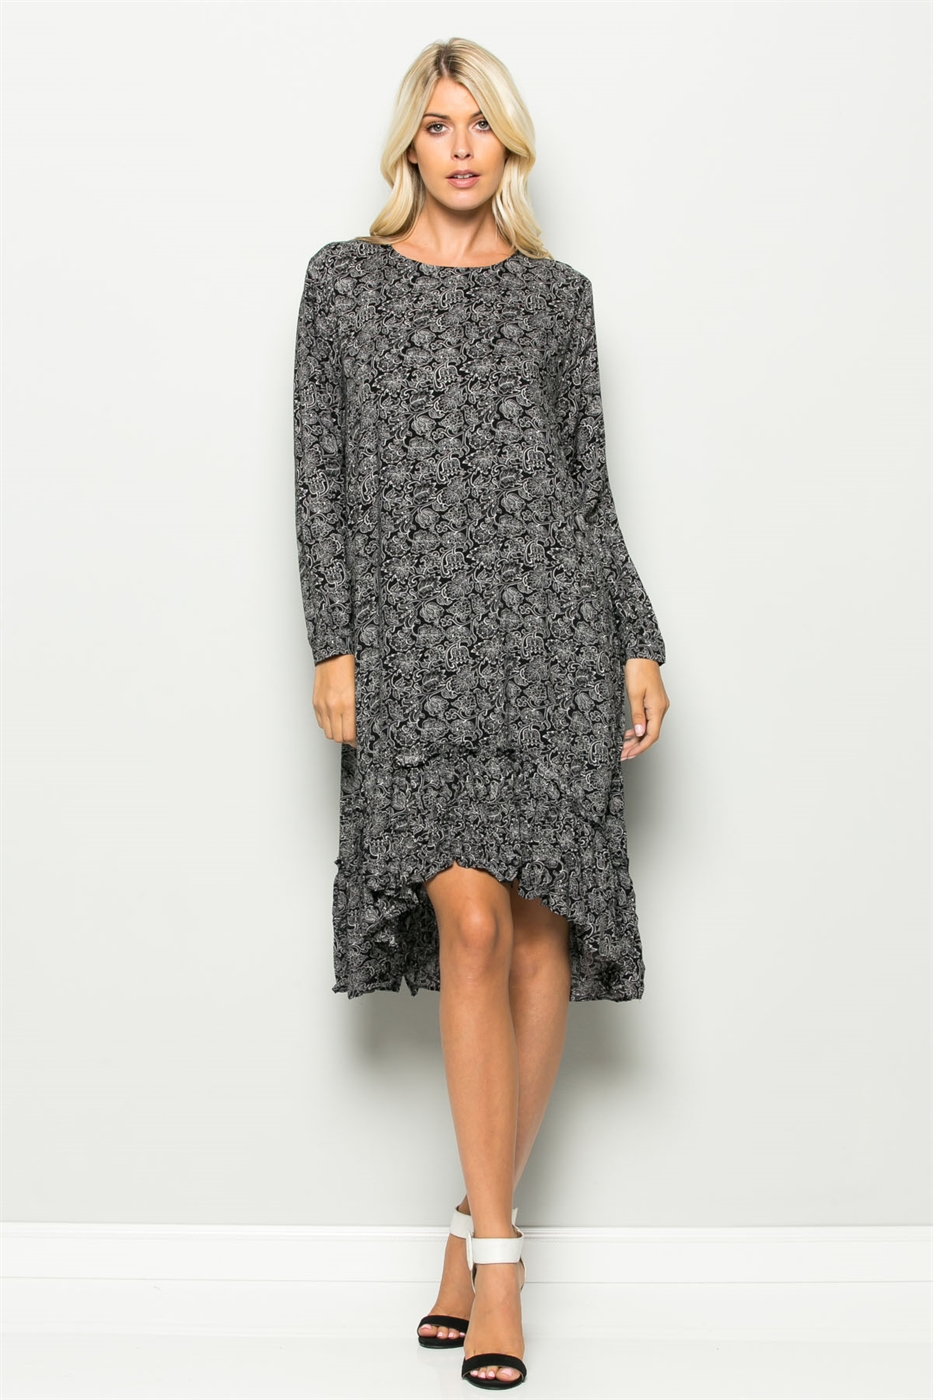 PRINT RUFFLE BOTTOM MIDI DRESS - orangeshine.com